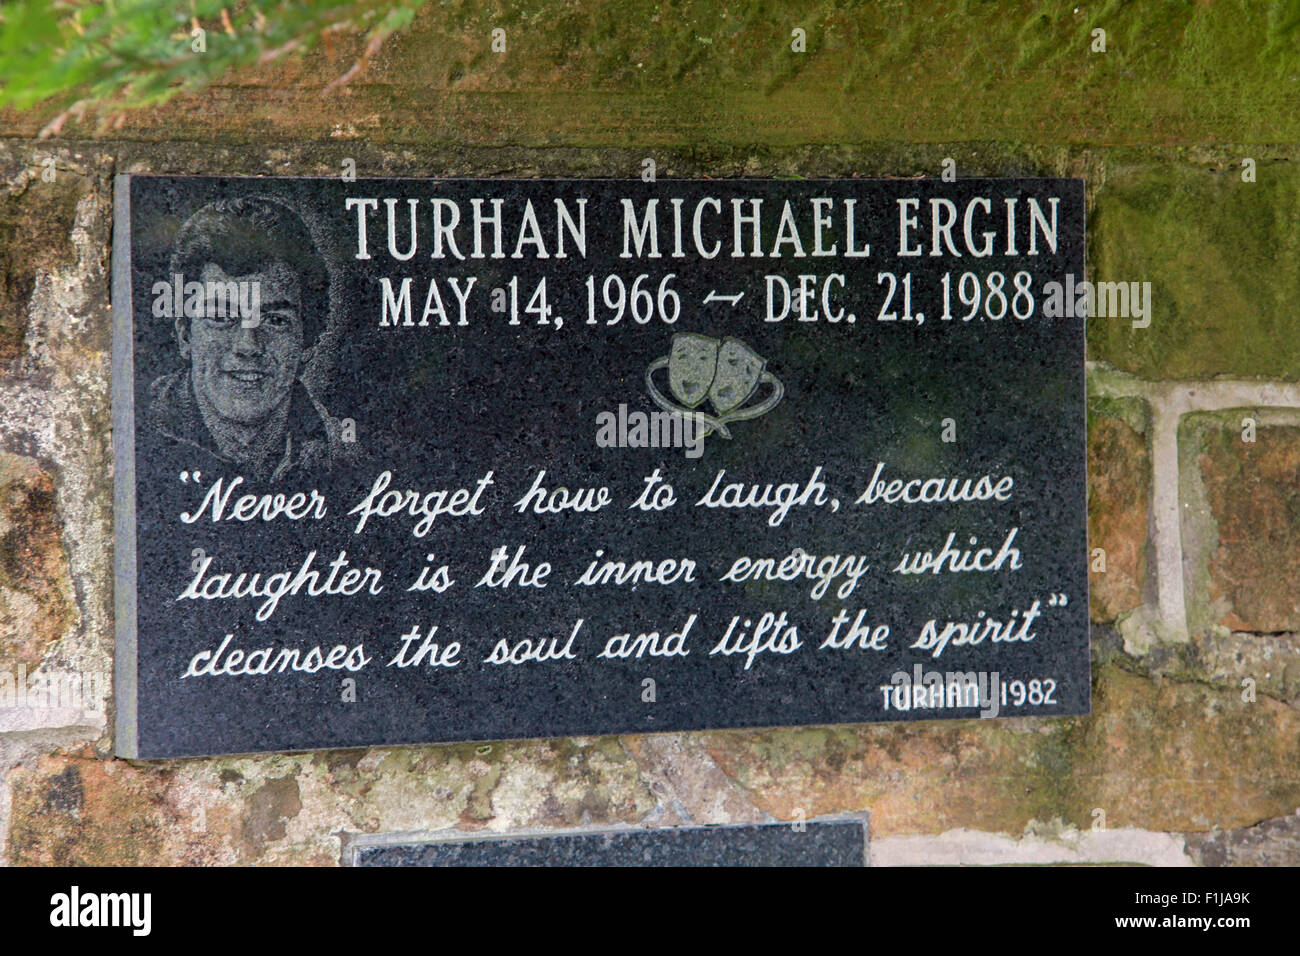 Michael Ergin,Scotland,Lodge,Visitors,Centre,DLVC,Trust,Lockerbie,Memorial,Remembrance,Scotland,Victims,Pan,Am,PanAm,flight,103,bomb,bombing,terrorist,December,1988,attack,crash,dead,site,21/12/1988,270,victims,Scottish,Town,conspiracy,blast,Tundergarth,Room,garden,of,Dryfesdale,Cemetery,New York,GoTonySmith,Lodge,Visitors,Centre,DLVC,Trust,Lockerbie,Memorial,Scotland,Victims,Pan,Am,PanAm,flight,103,bomb,bombing,terrorist,December,1988,attack,crash,dead,site,21/12/1988,270,victims,Scottish,Town,conspiracy,blast,Tundergarth,Room,garden,of,Dryfesdale,Cemetery,news,Cultural,understanding,remembering,innocent,transatlantic,Frankfurt,Detroit,Libyan,Libya,Colonel Muammar Gaddafi,civil,case,compensation,terrorism,PA103,30,30years,years,Syracuse,University,SU,family,collections,Story,Archive,Archives,40,35,Timeline,saga,disaster,air,Scholars,program,programs,remembrance,Clipper Maid of the Seas,N739PA,Boeing,727,plane,aircraft,Scotland,UK,United Kingdom,GB,Great Britain,resting,place,Buy Pictures of,Buy Images Of,New York,al megrahi,30 Years